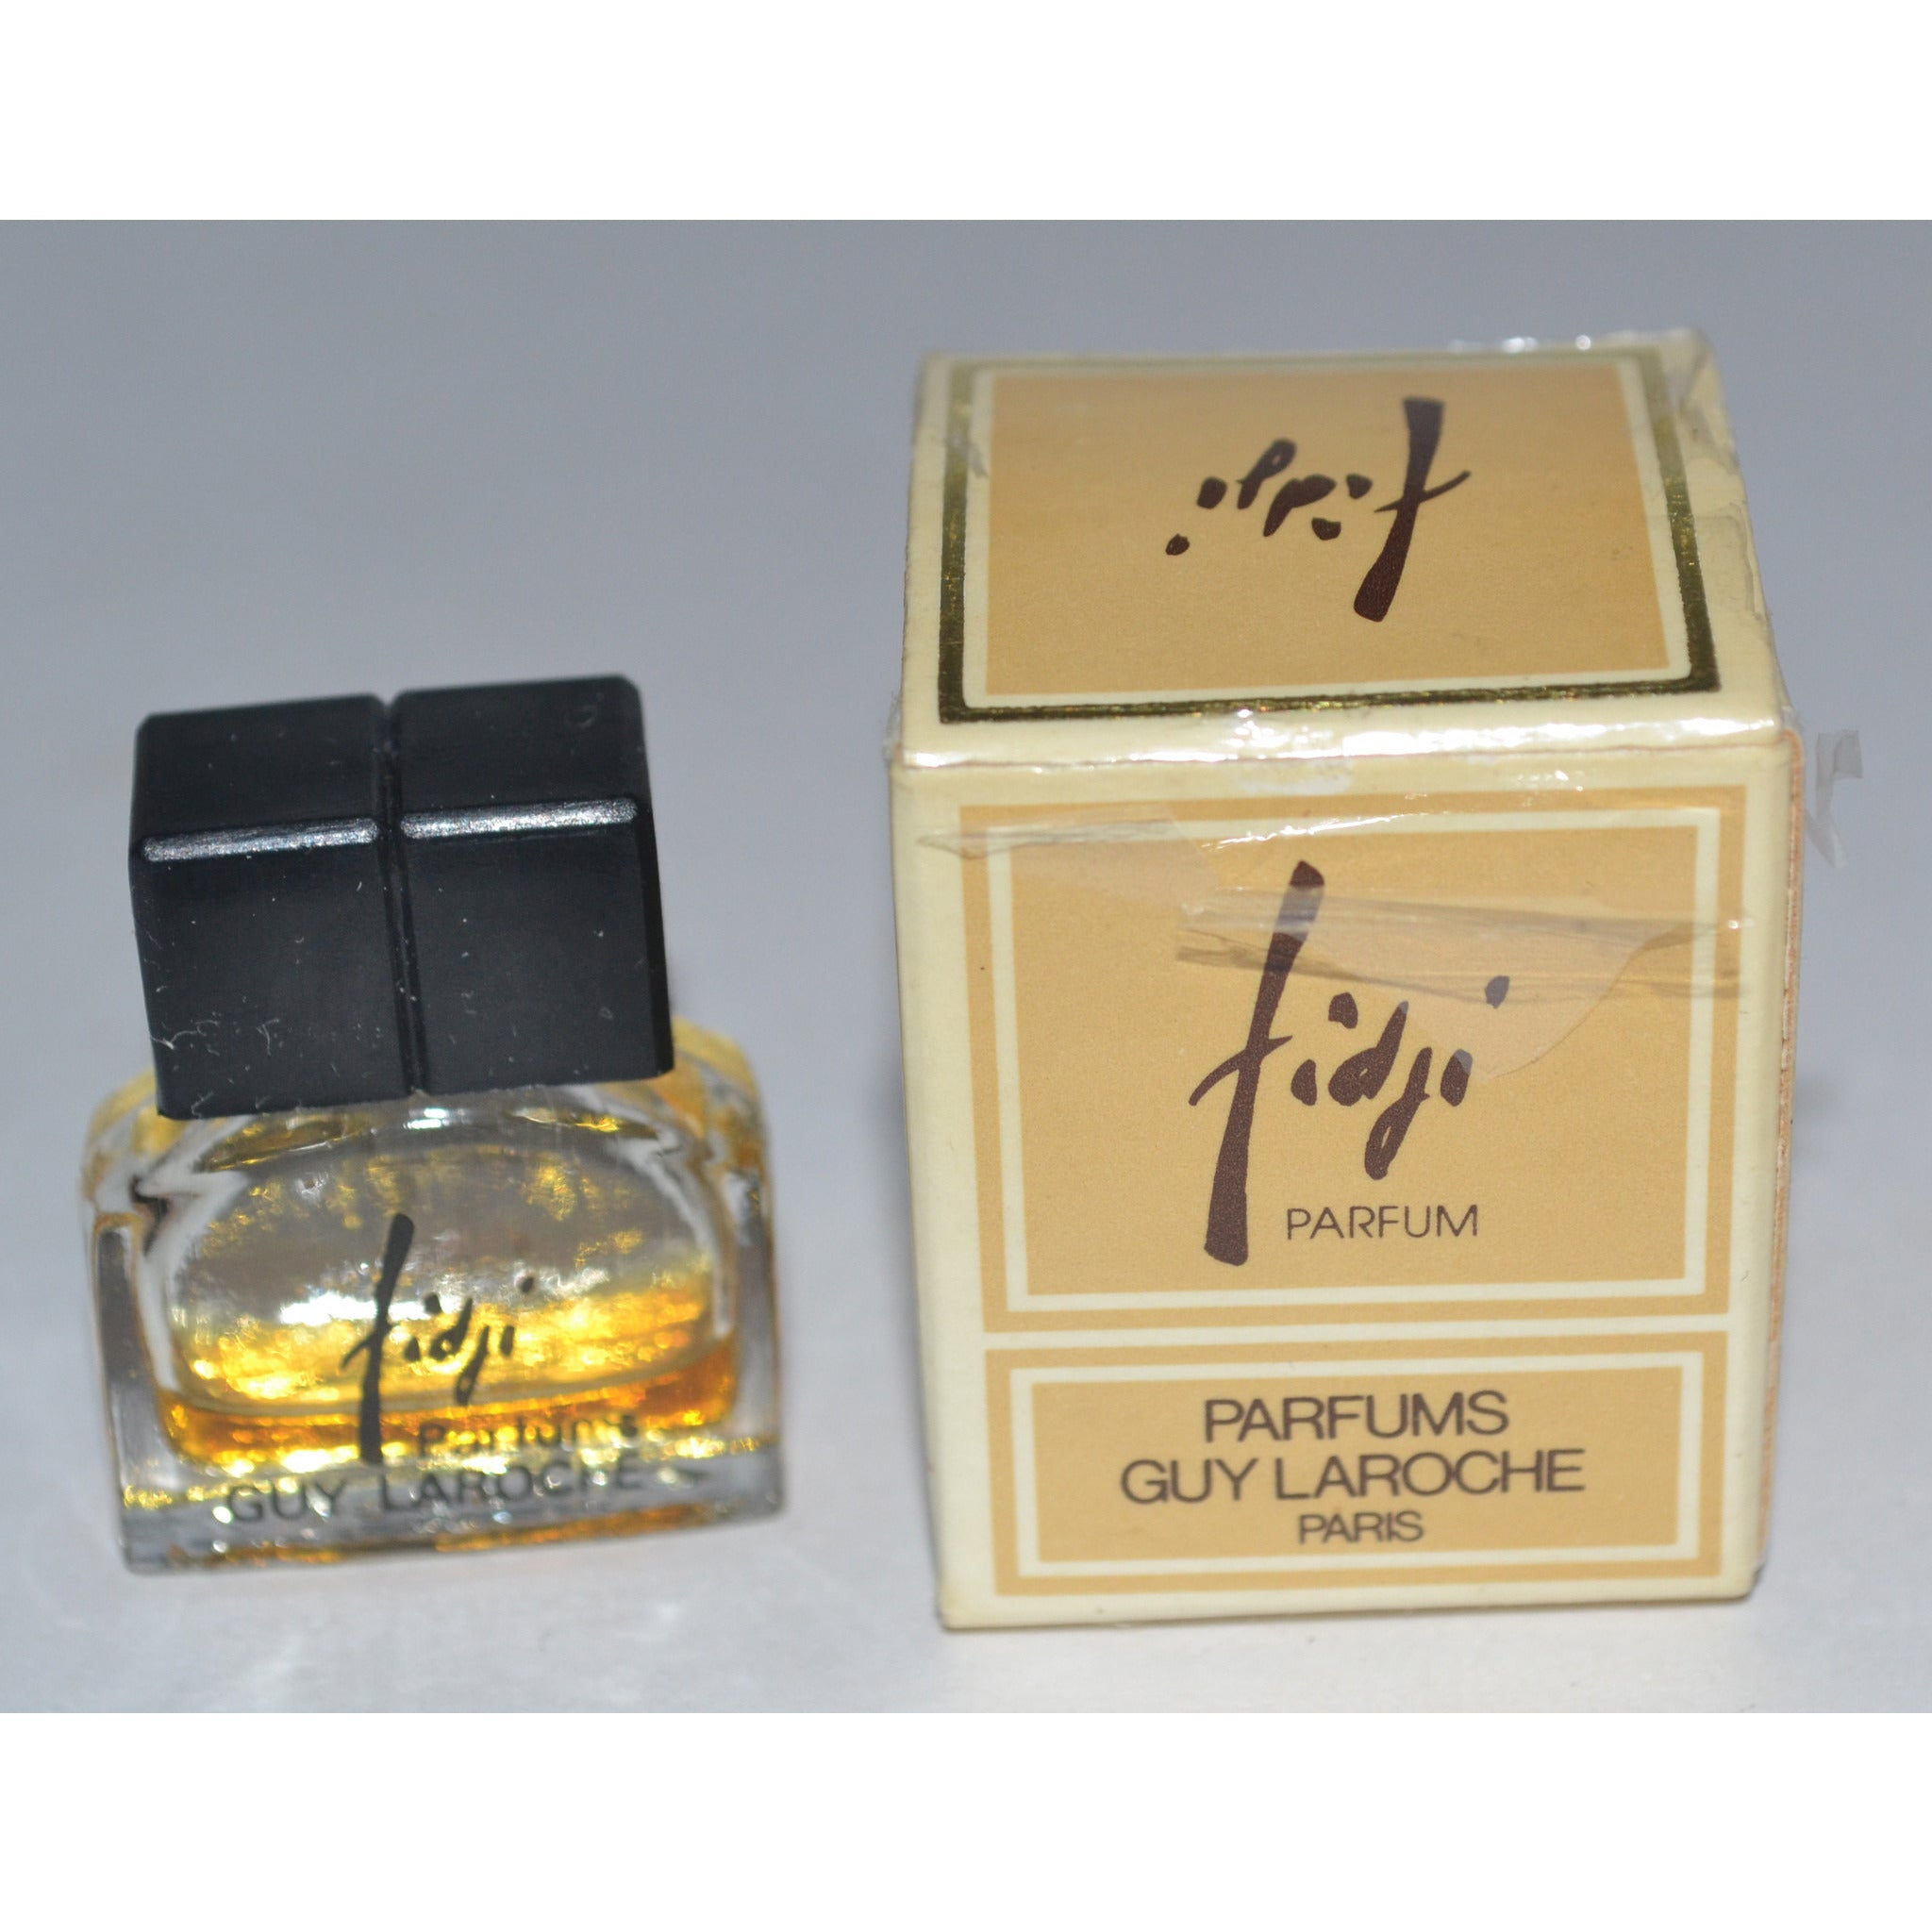 Vintage Fidji Parfum Mini By Guy Laroche